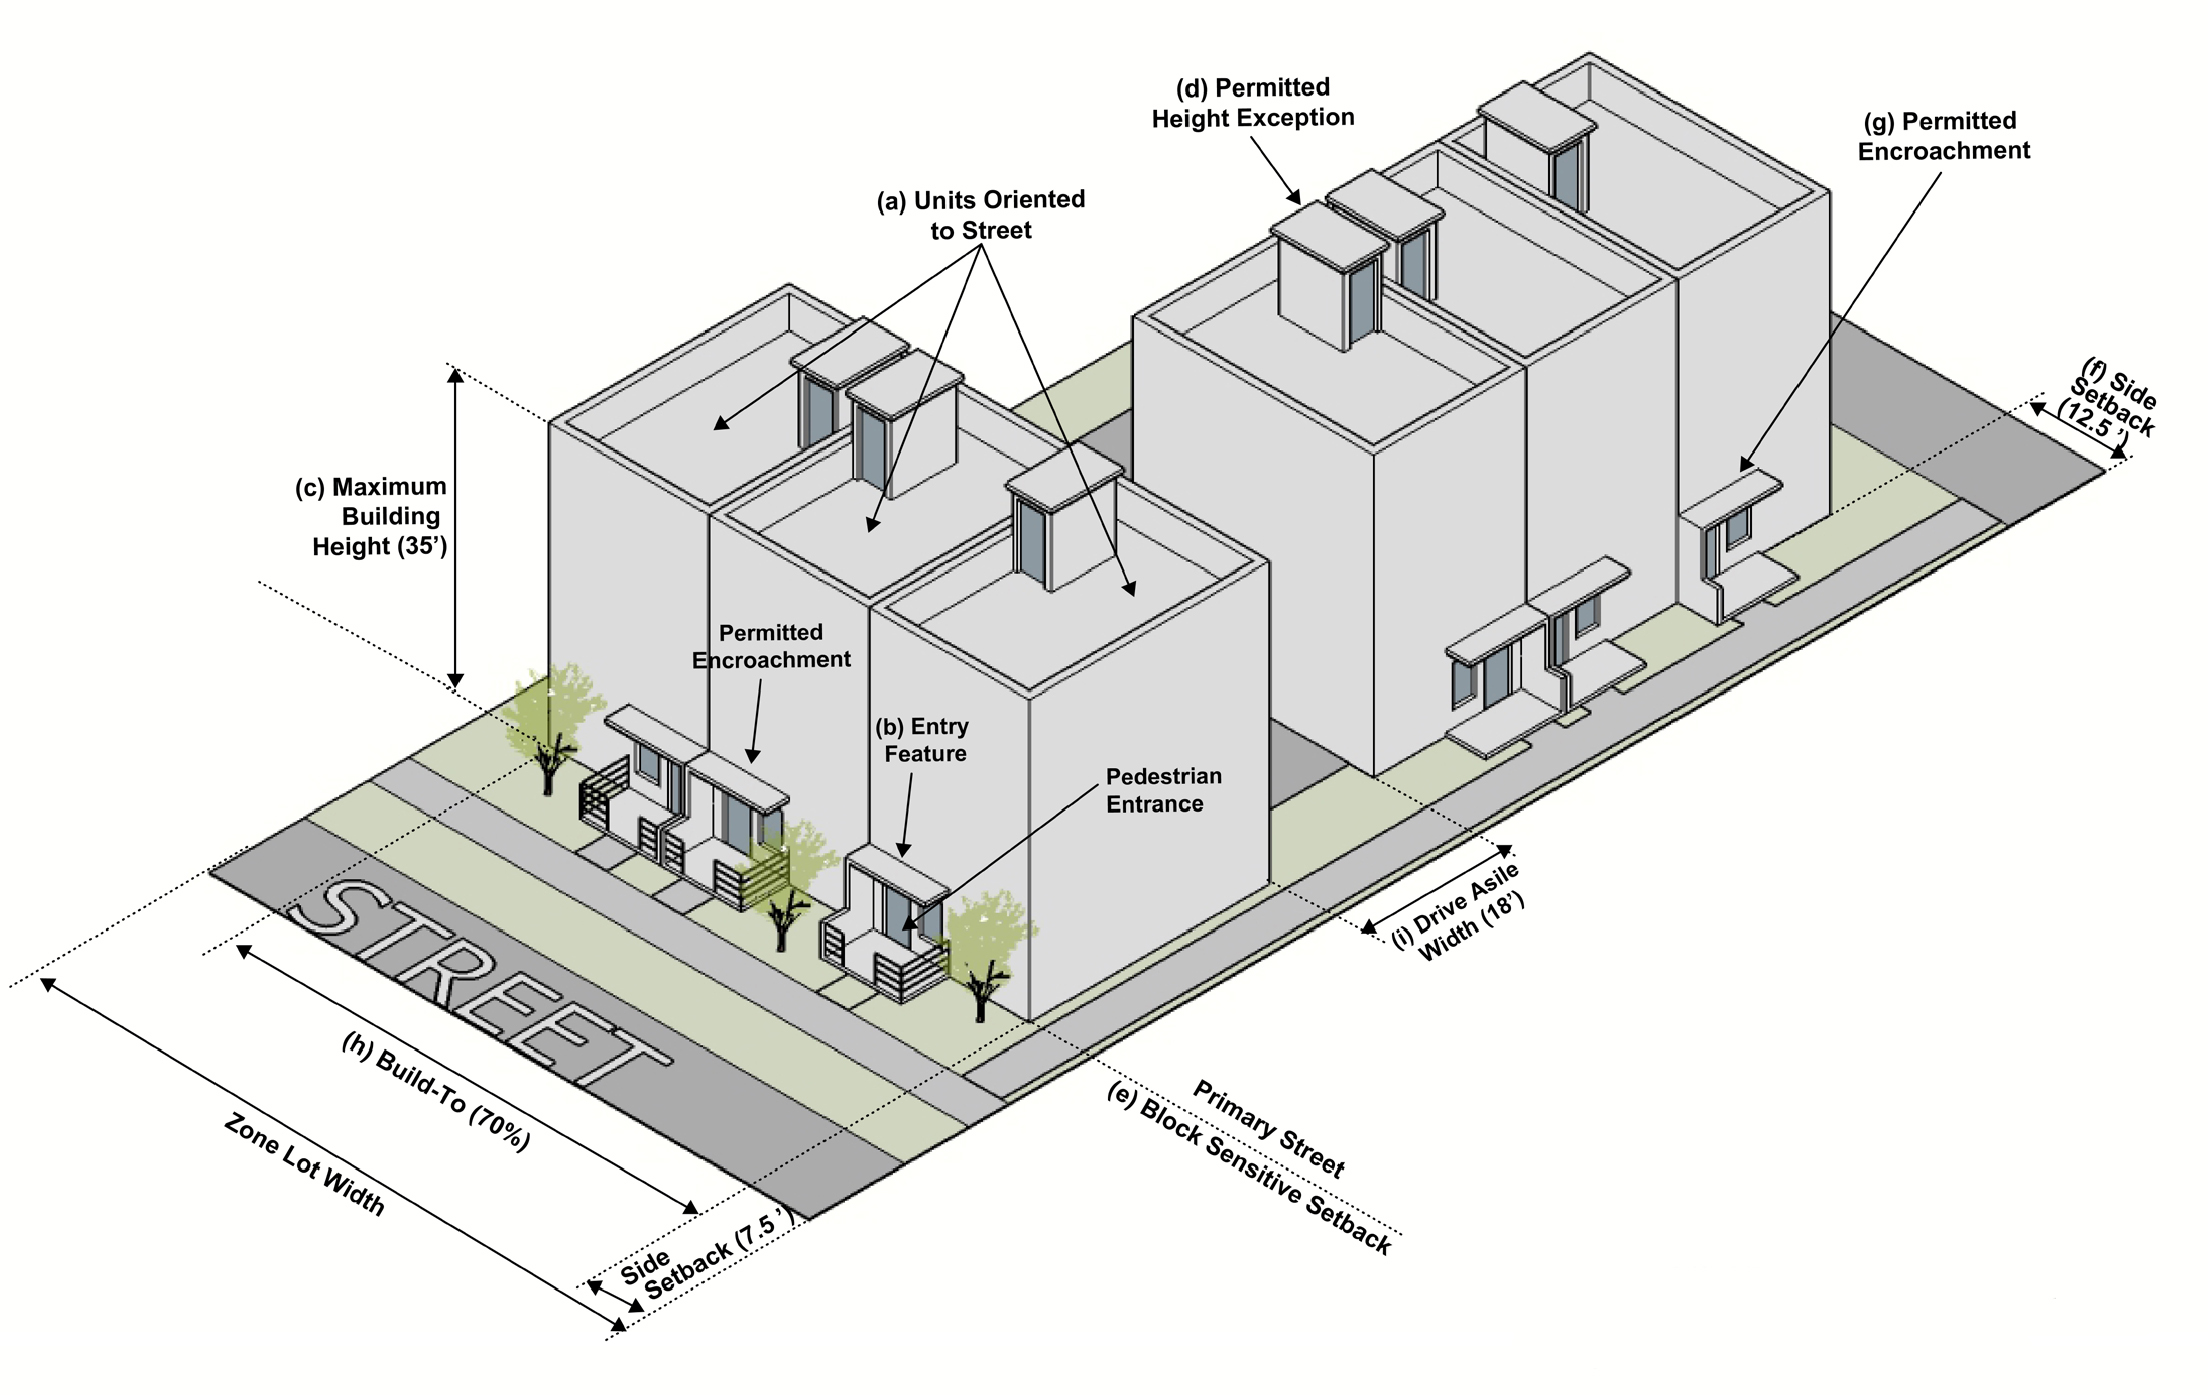 Diagram showing recommended requirements for urban townhouses in multi-unit zone district